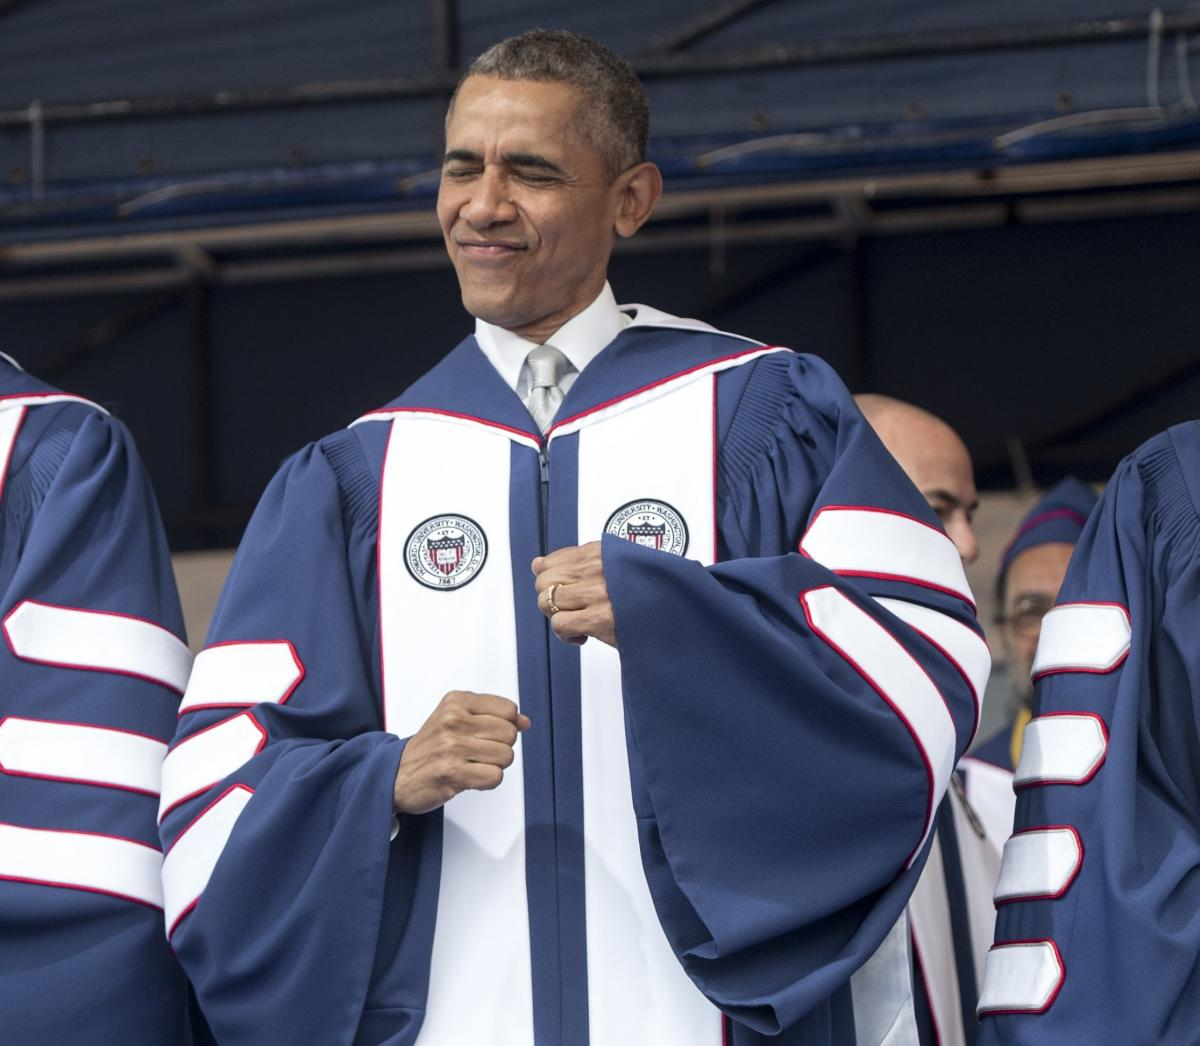 Obama's tone has lightened lately in some of his speeches, like this one at Howard University last week, as he's taken the opportunity to tout what he sees as the country's prosperous economy — and dance a little.